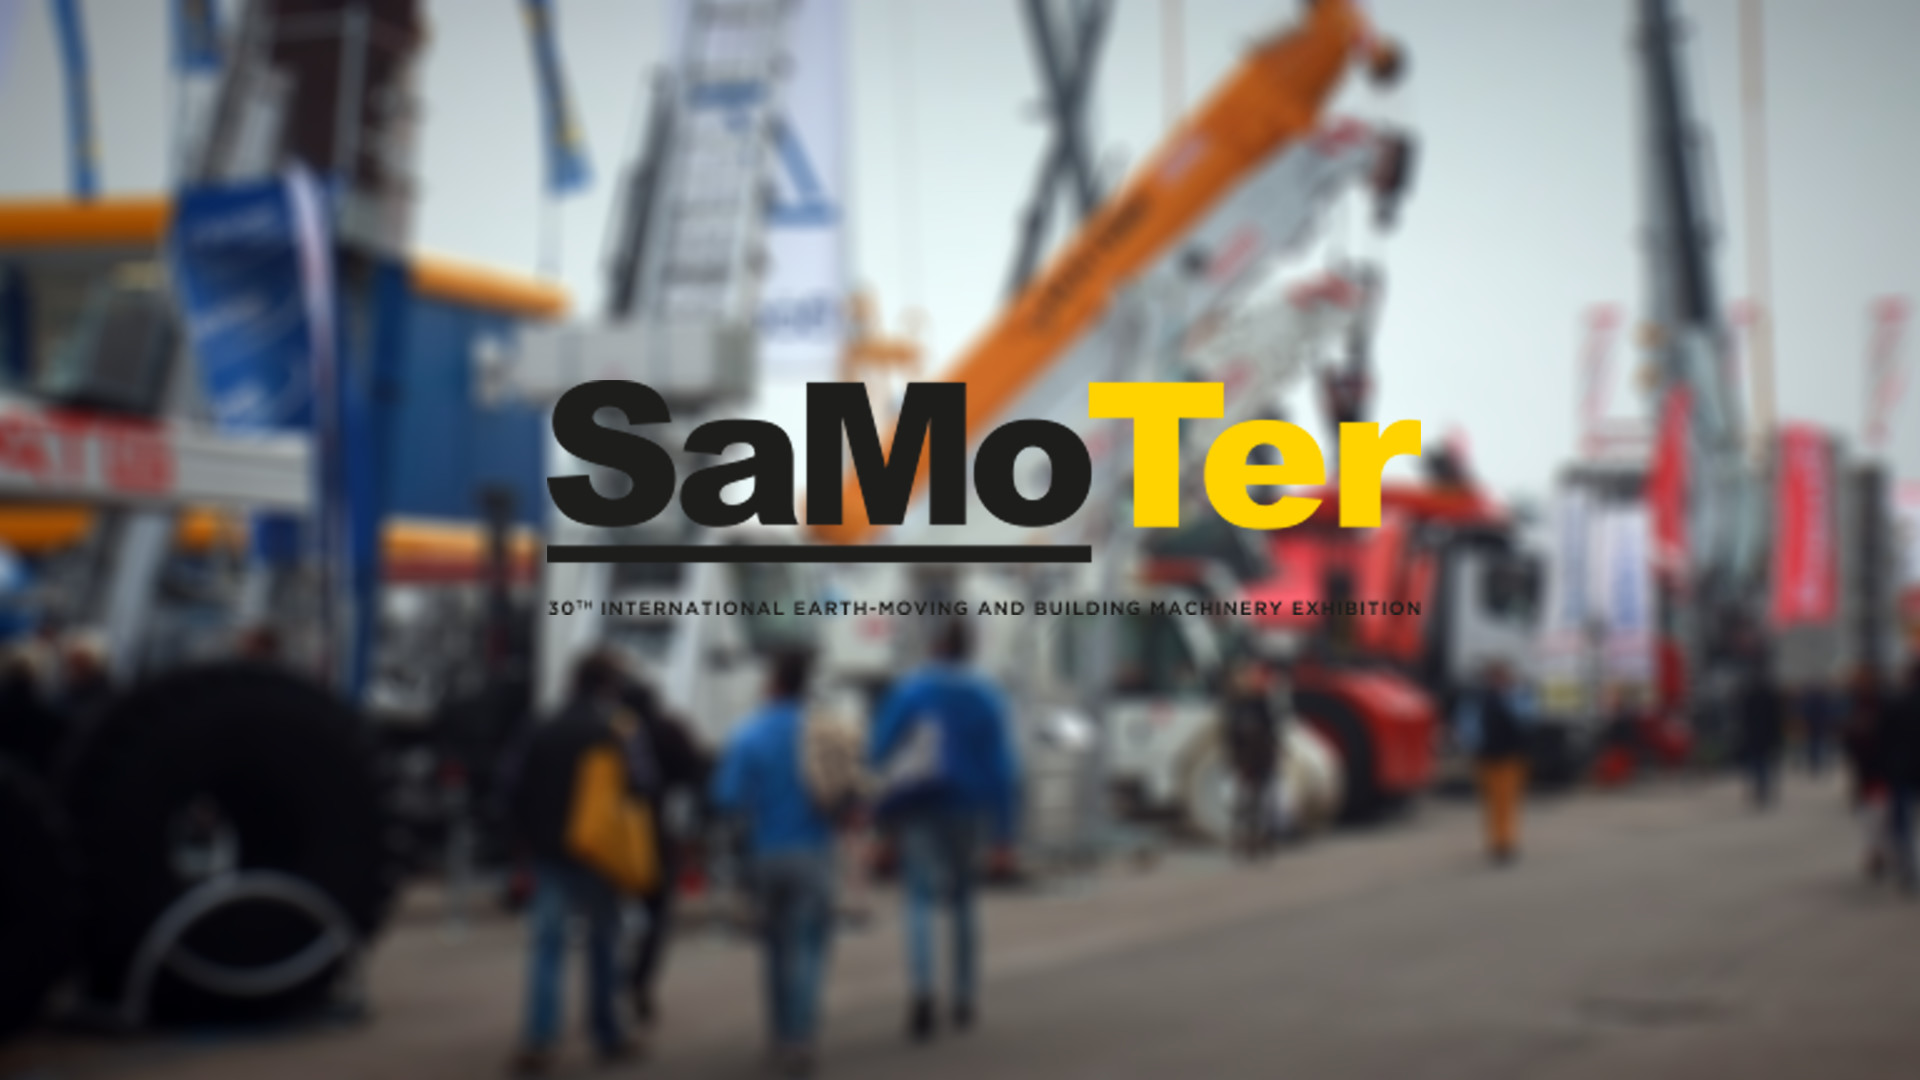 SAMOTER IN FIERA A VERONA